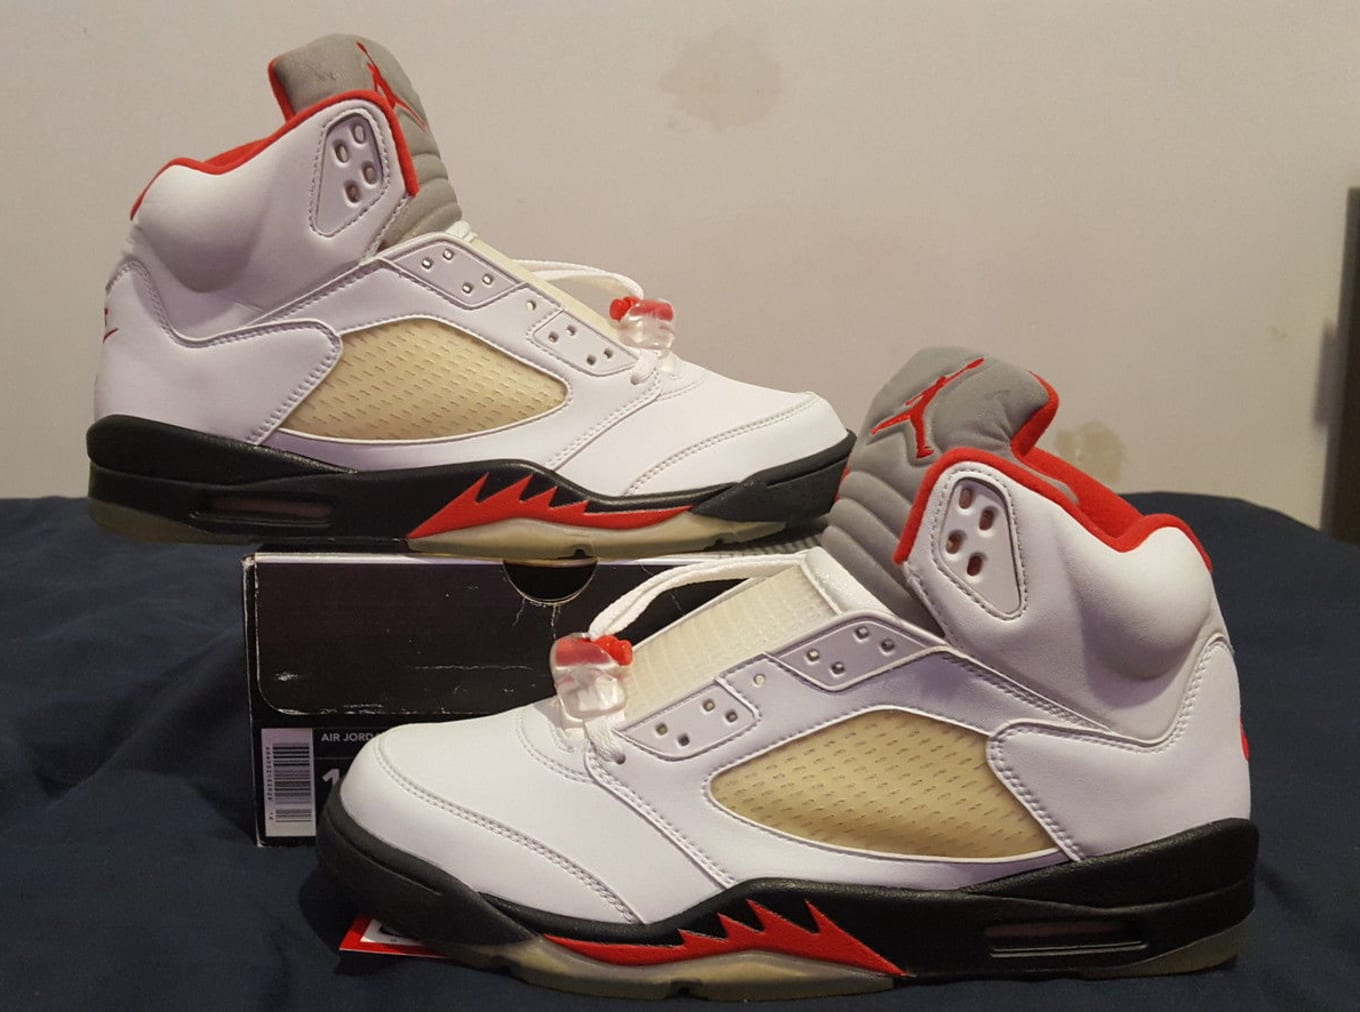 b64877d9407fe5 usa air jordan 5 fire red 1990 5d44d d959b